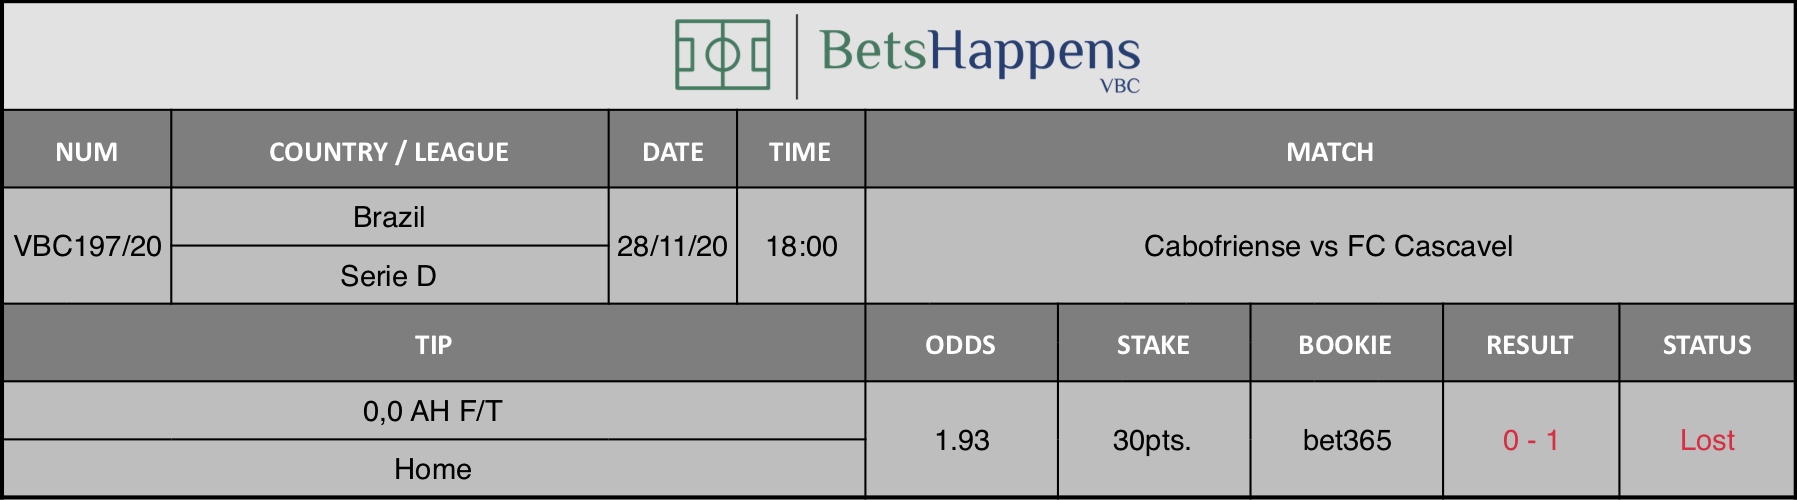 Results of our tip for the Cabofriense vs FC Cascavel match where 0,0 AH F/T  Home is recommended.